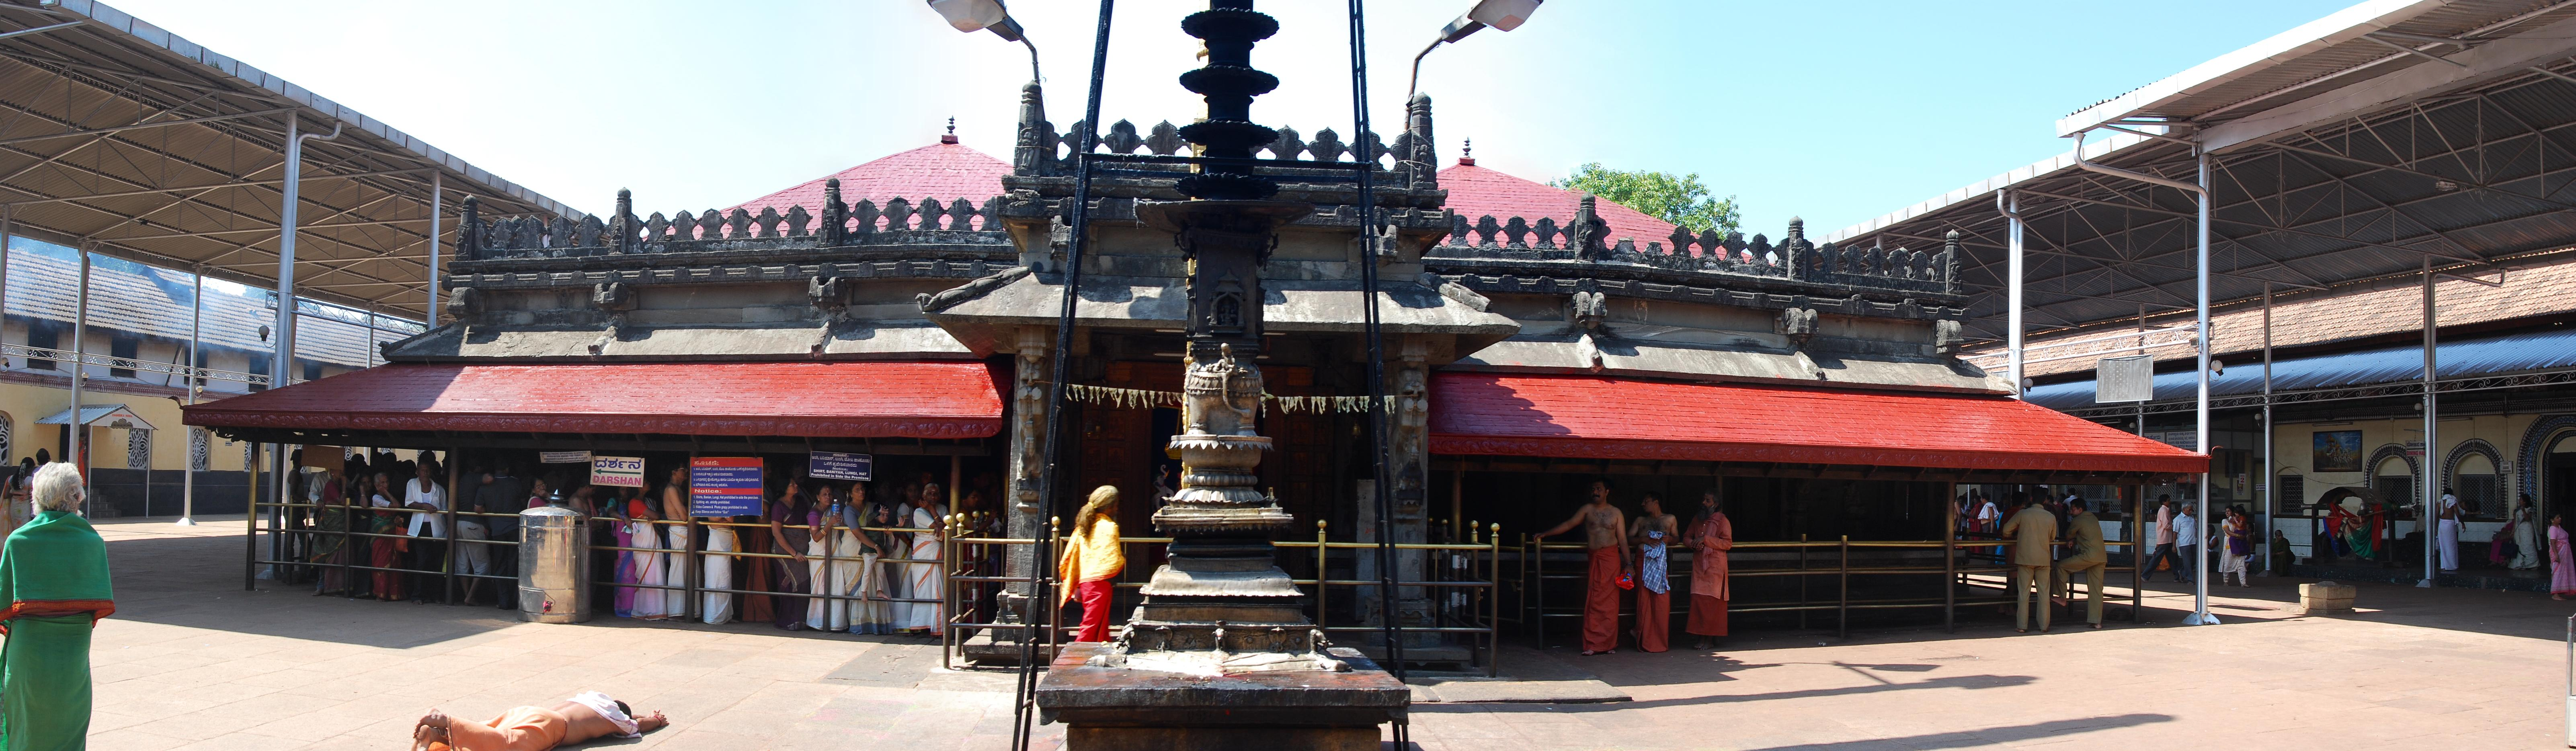 Temple Package Tours Mangalore - Mangalore Taxi